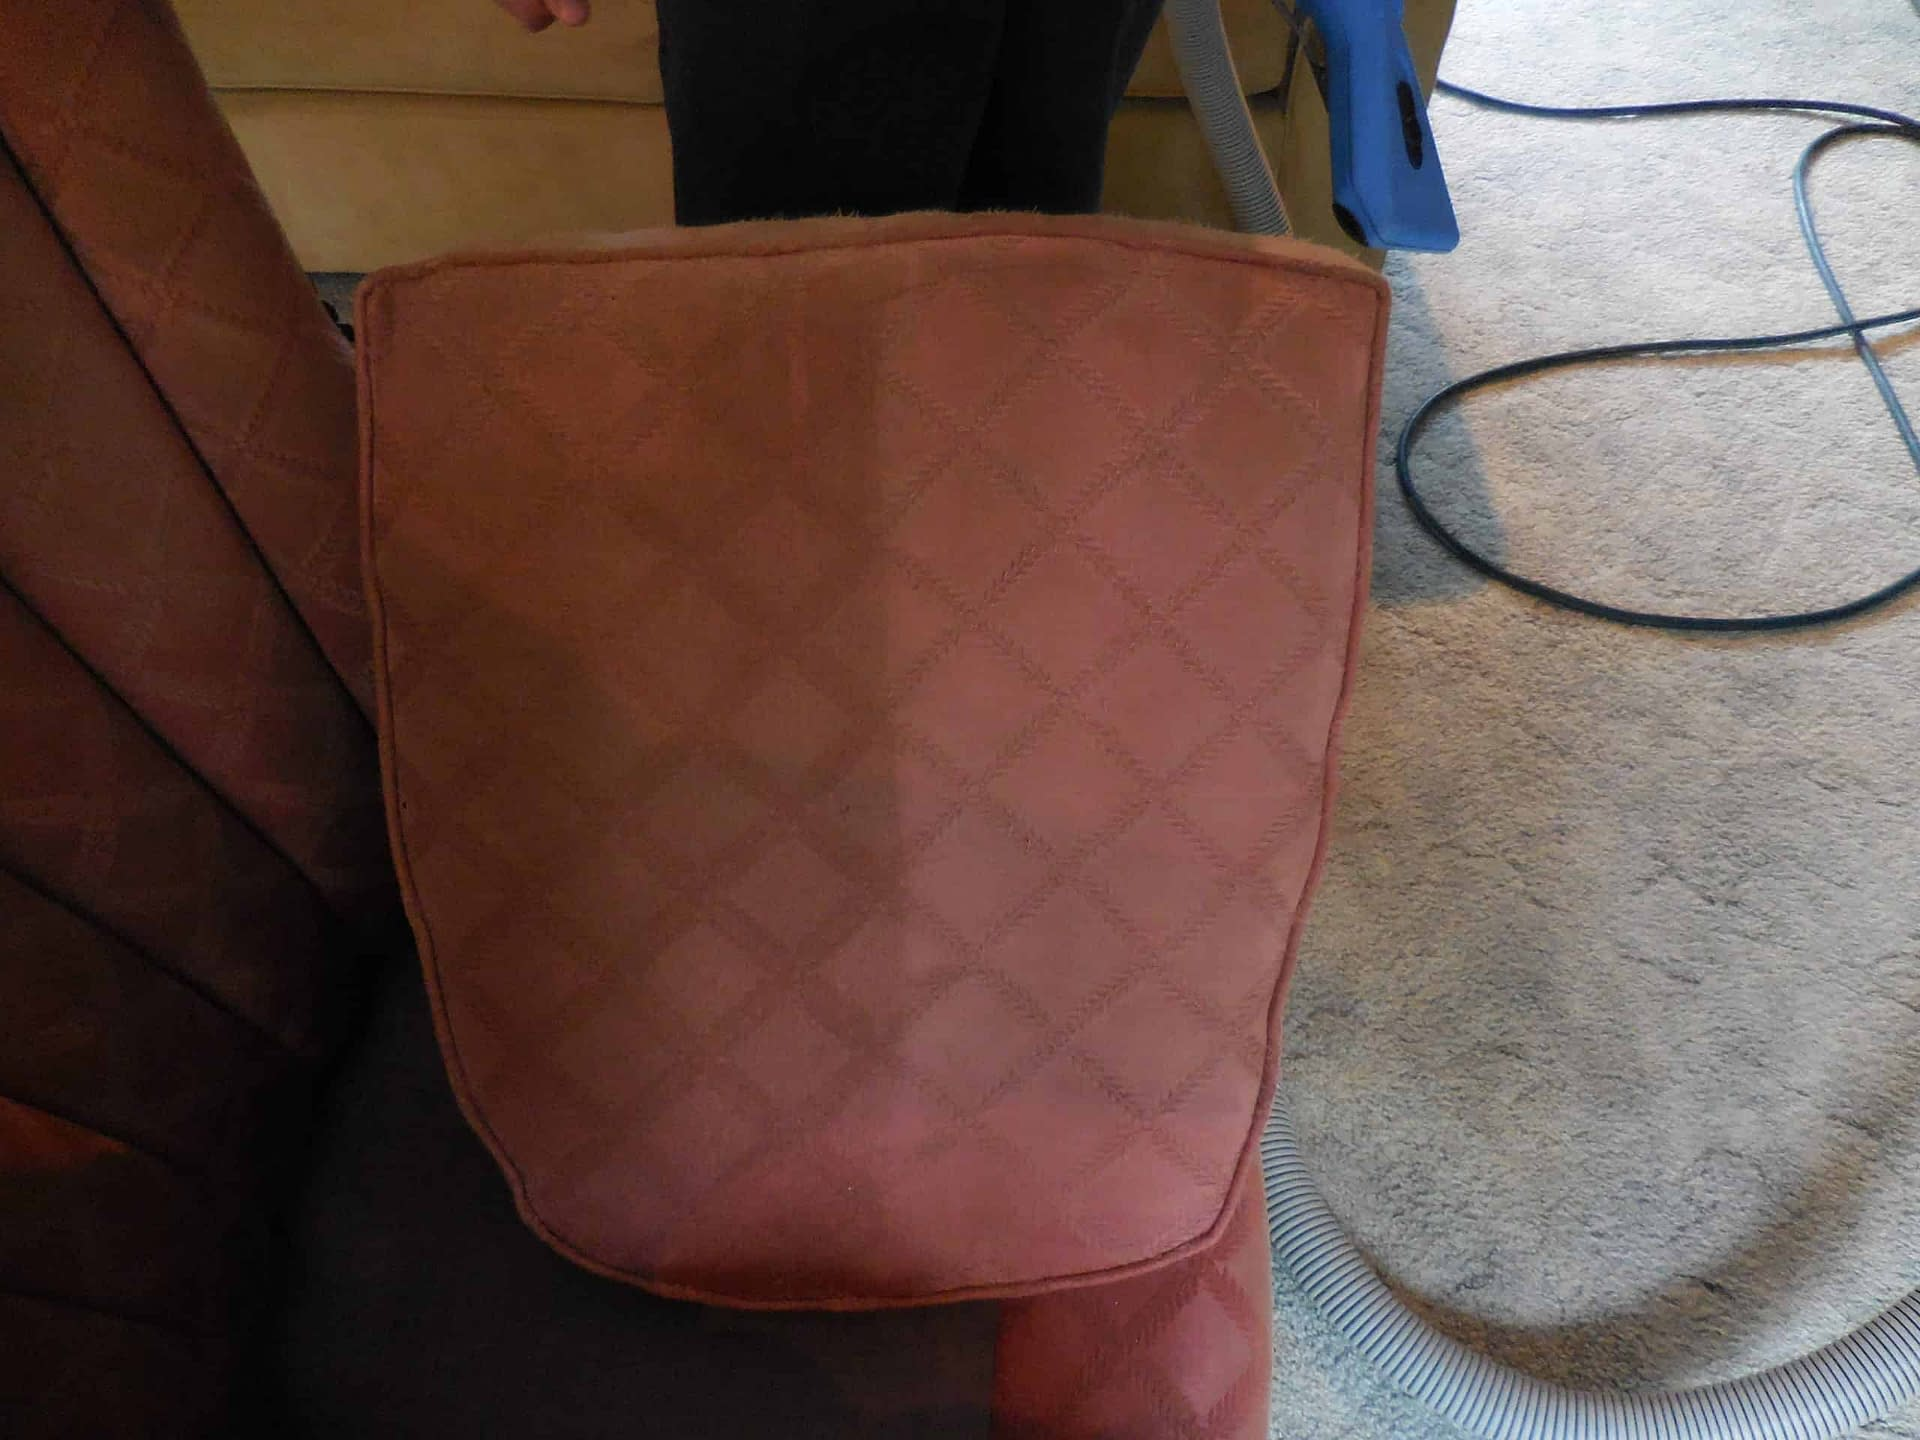 Red cushion cleaned in Furlong, PA